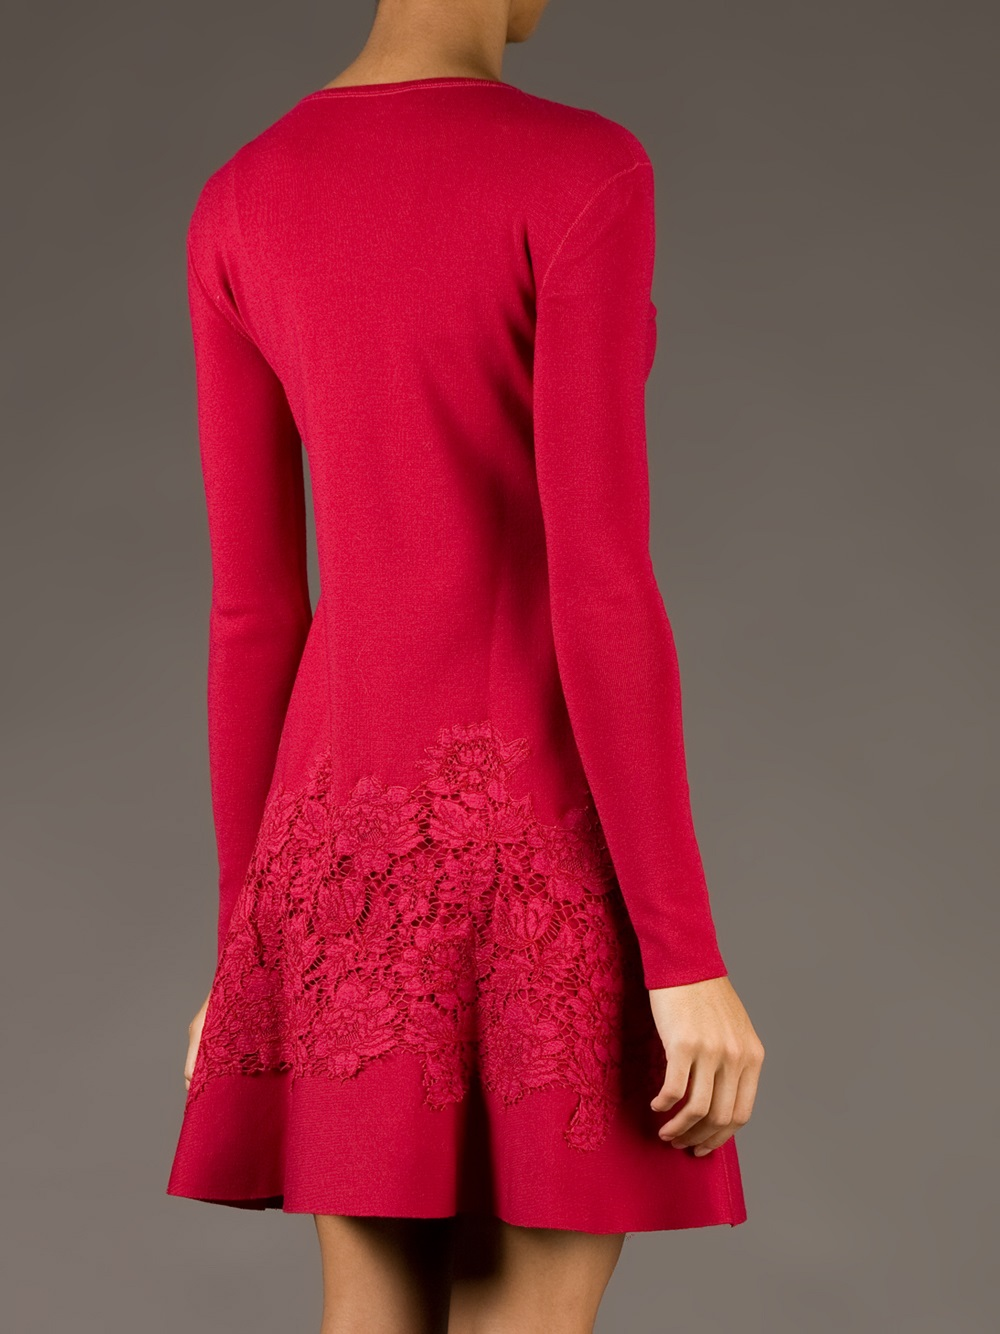 Valentino Lace Detail Sweater Dress in Red | Lyst